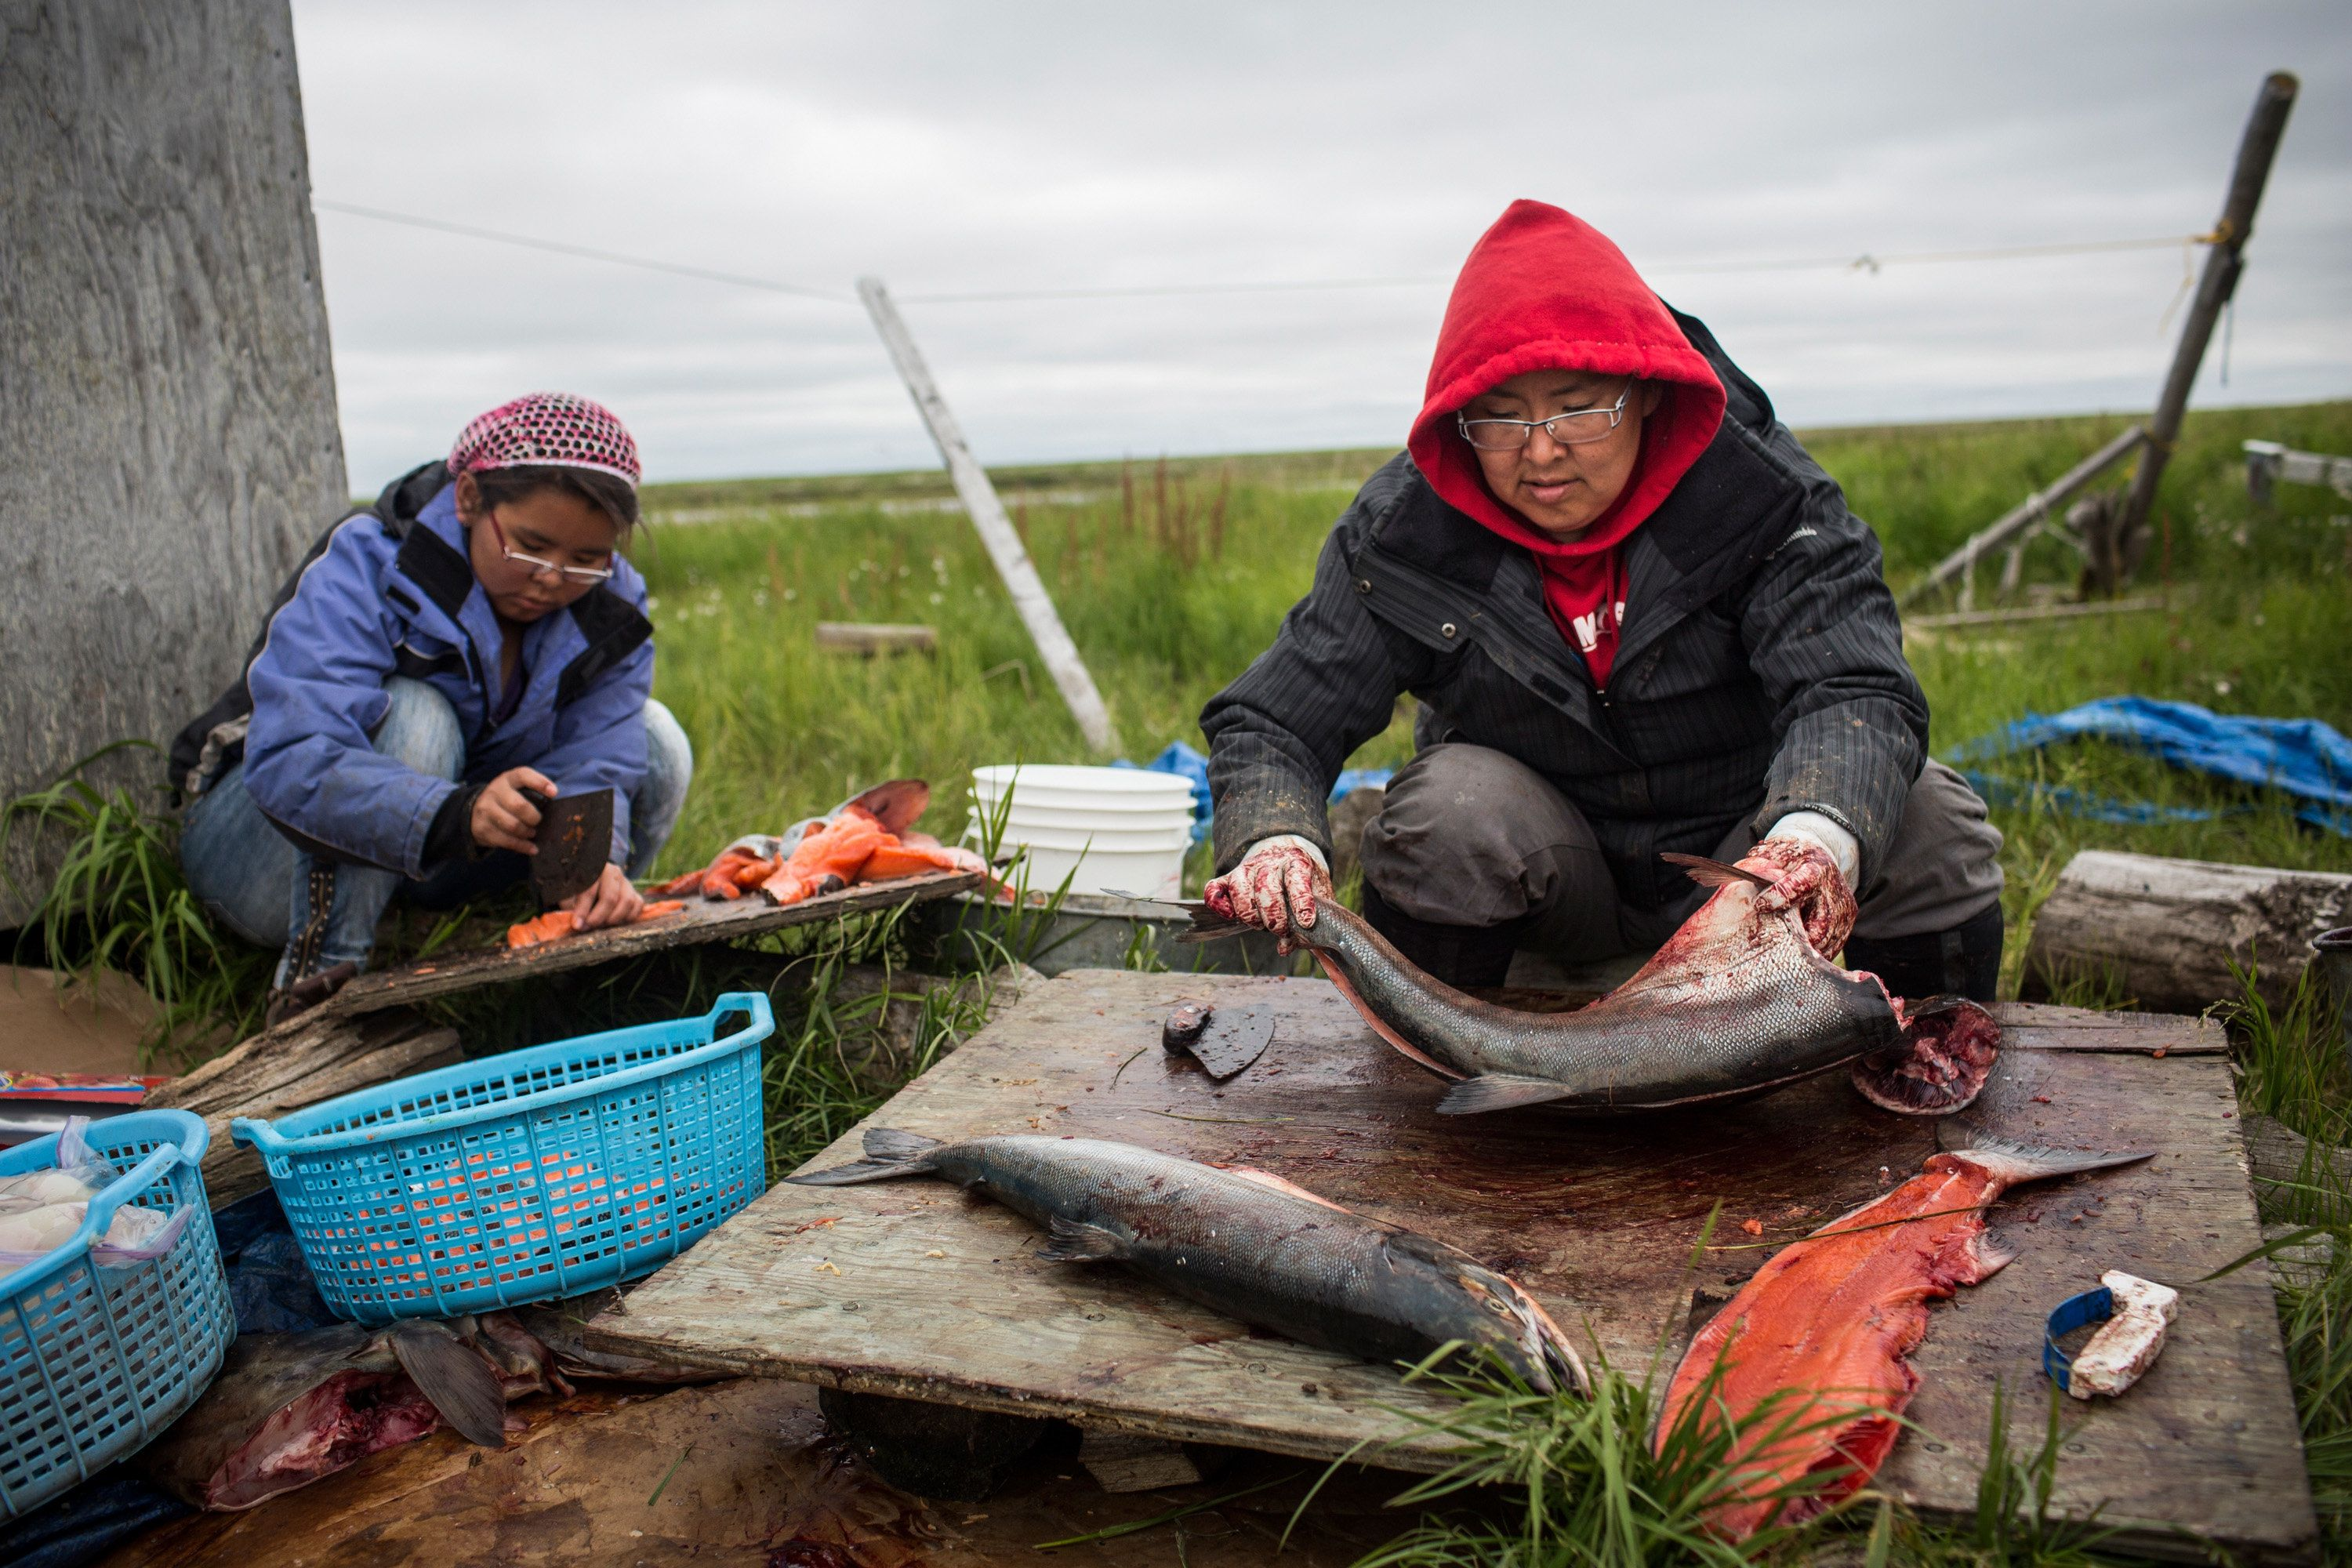 NEWTOK, AK - JUNE 30:  Yupik women prepare freshly caught salmon for curing on June 30, 2015 in Newtok, Alaska. Newtok, which has a population of approximately of 375 ethnically Yupik people, was established along the shores of the Ninglick River, near where the river empties into the Bering Sea, by the Bureau of Indian Affairs (BIA) in 1959. The Yupik people have lived on the coastal lands along the Bering Sea for thousands of years. However, as global temperatures rise the village is being threatened by the melting of permafrost; greater ice and snow melt - which is causing the Ninglick river to widen and erode the river bank; and larger storms that come in from the Bering Sea, which further erodes the land. According to the U.S. Army Corp of Engineers, the high point in Newtok - the school - could be underwater by 2017. A new village, approximately nine miles away titled Mertarvik, has been established, though so far families have been slow to relocate to the new village.   (Photo by Andrew Burton/Getty Images)